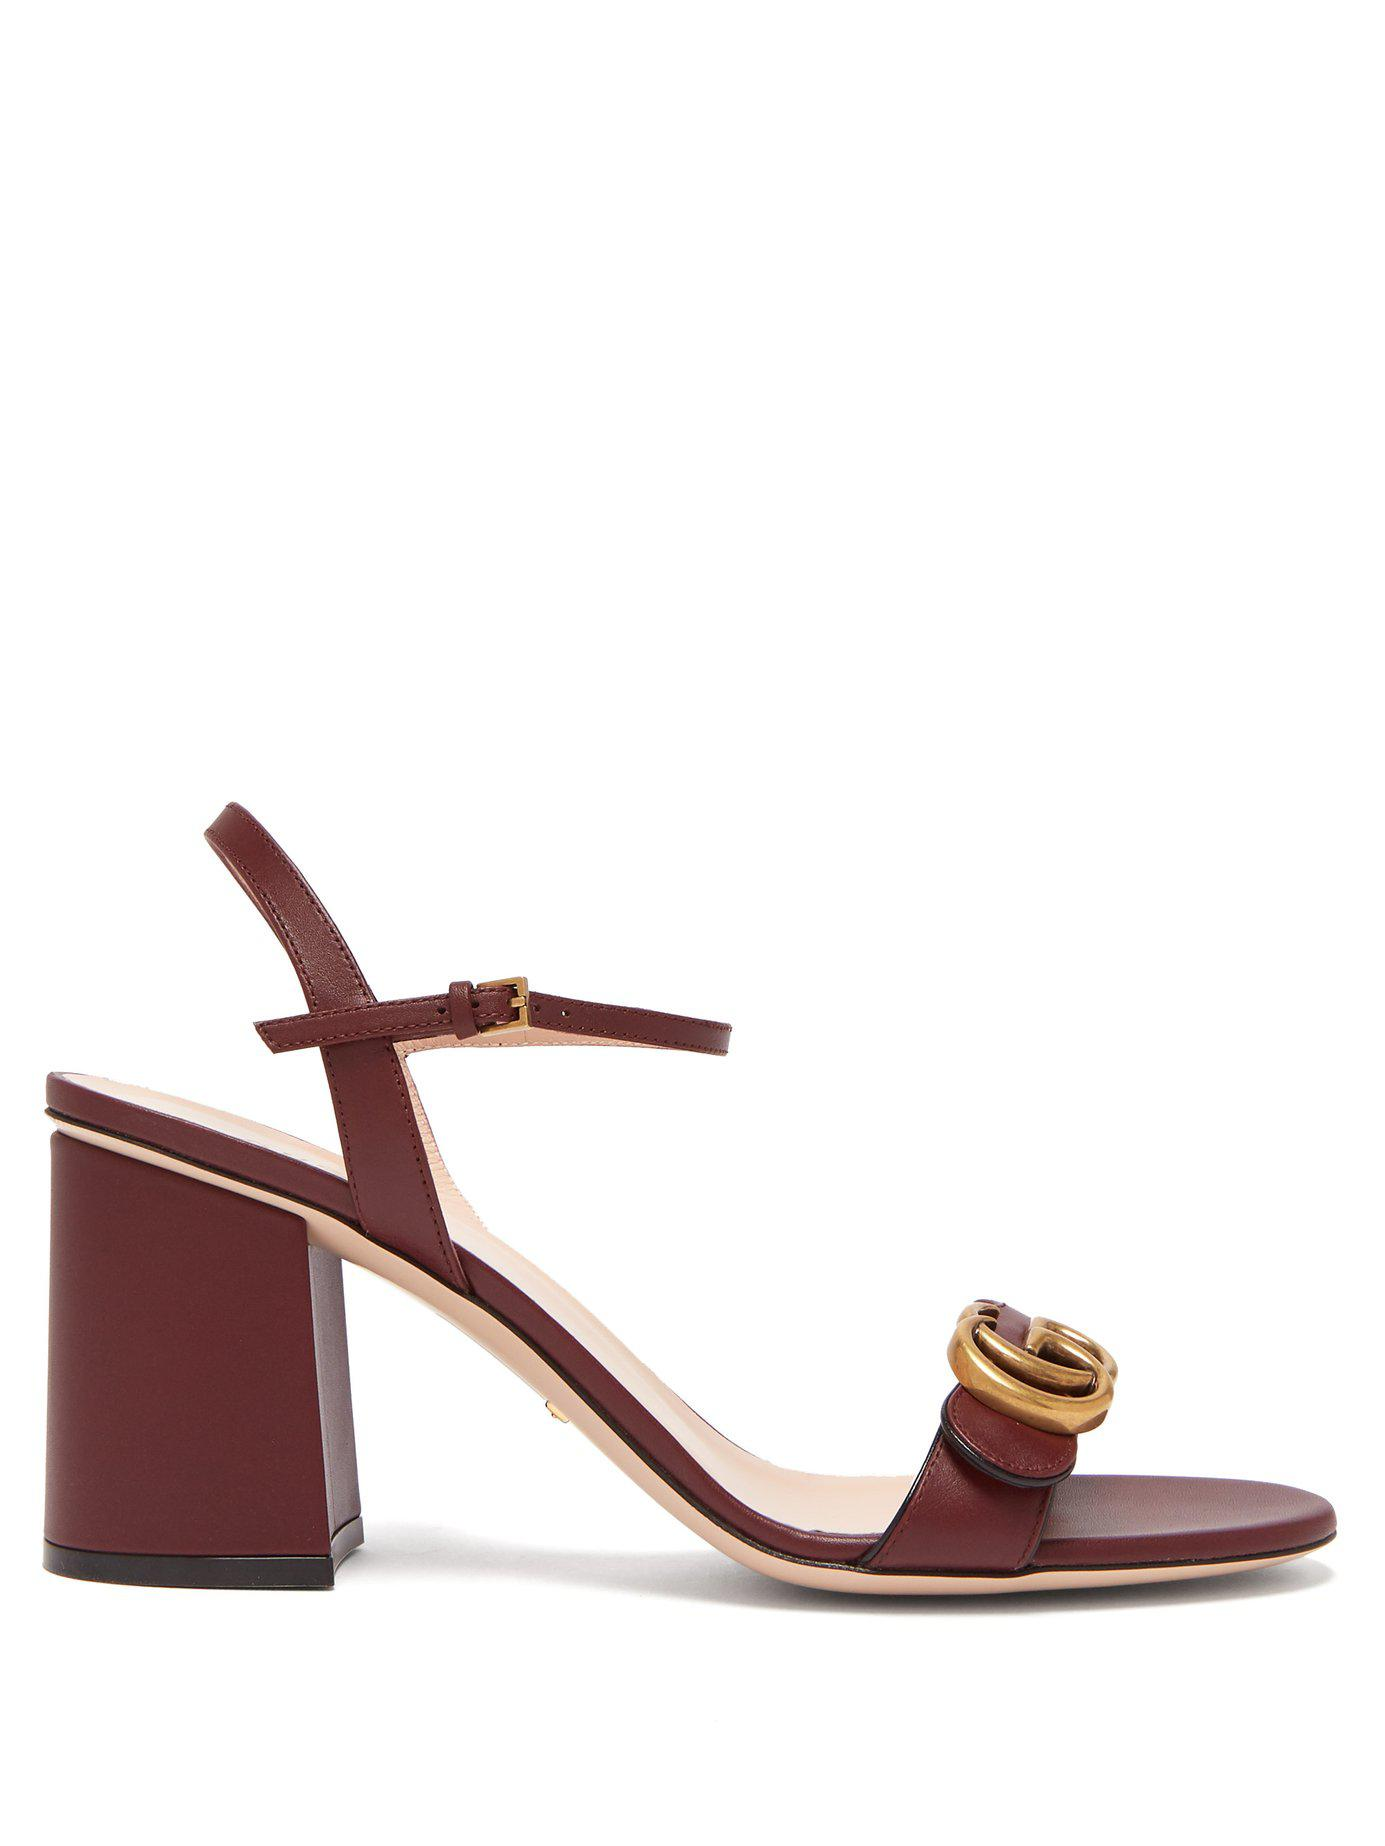 b370952a95bdc Gucci - Multicolor Gg Marmont Leather Sandals - Lyst. View fullscreen